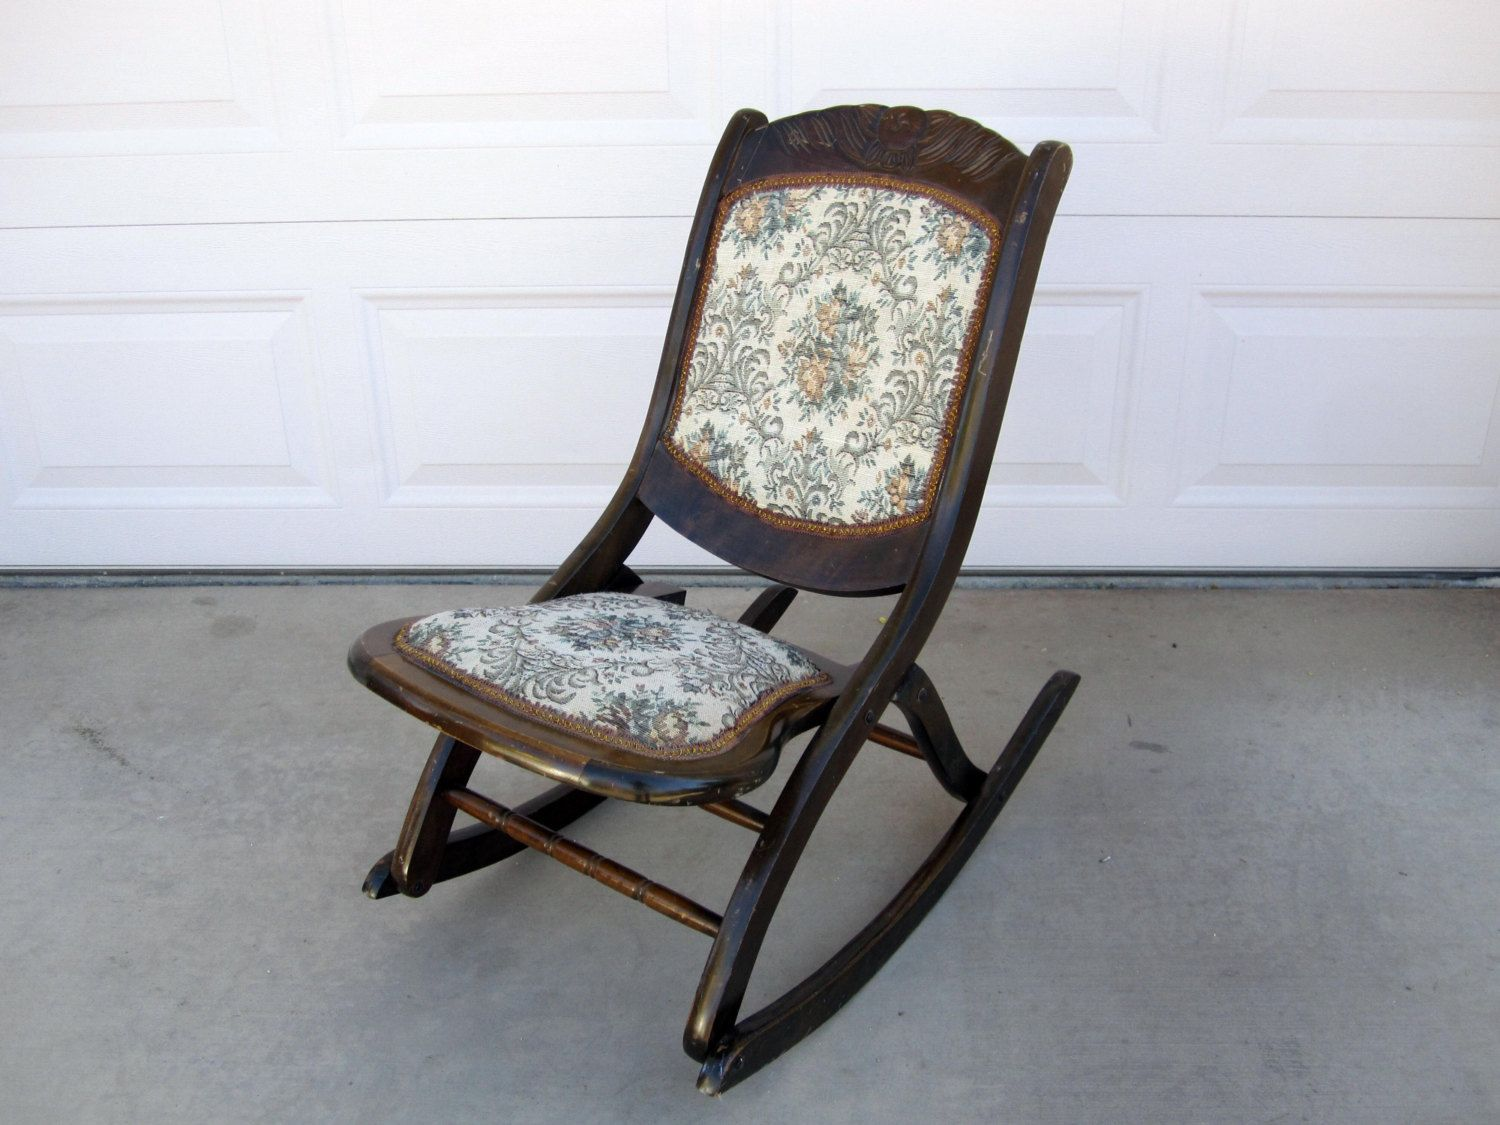 Alfa img - Showing > Antique Folding Rocking Chair Value - Alfa Img - Showing > Antique Folding Rocking Chair Value Trailer